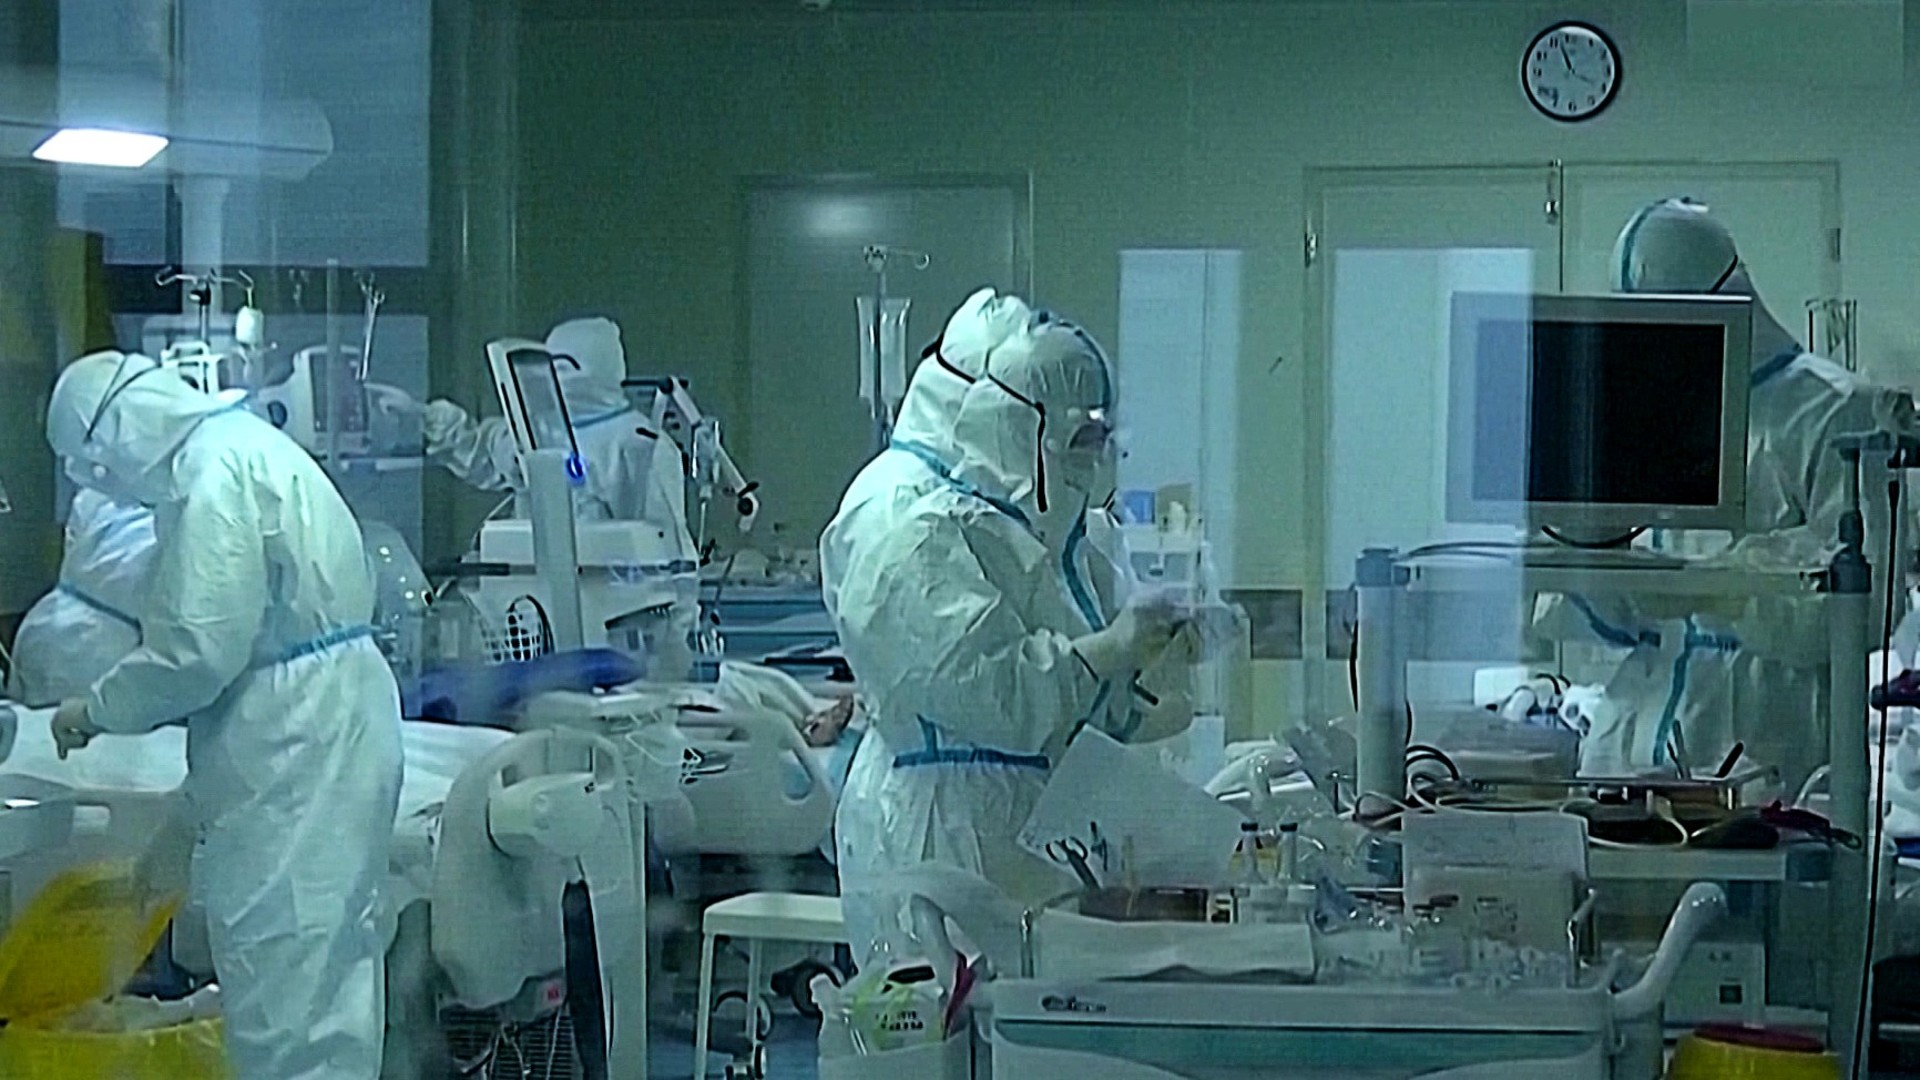 Coronavirus outbreak: Hospitals in China swamped with patients